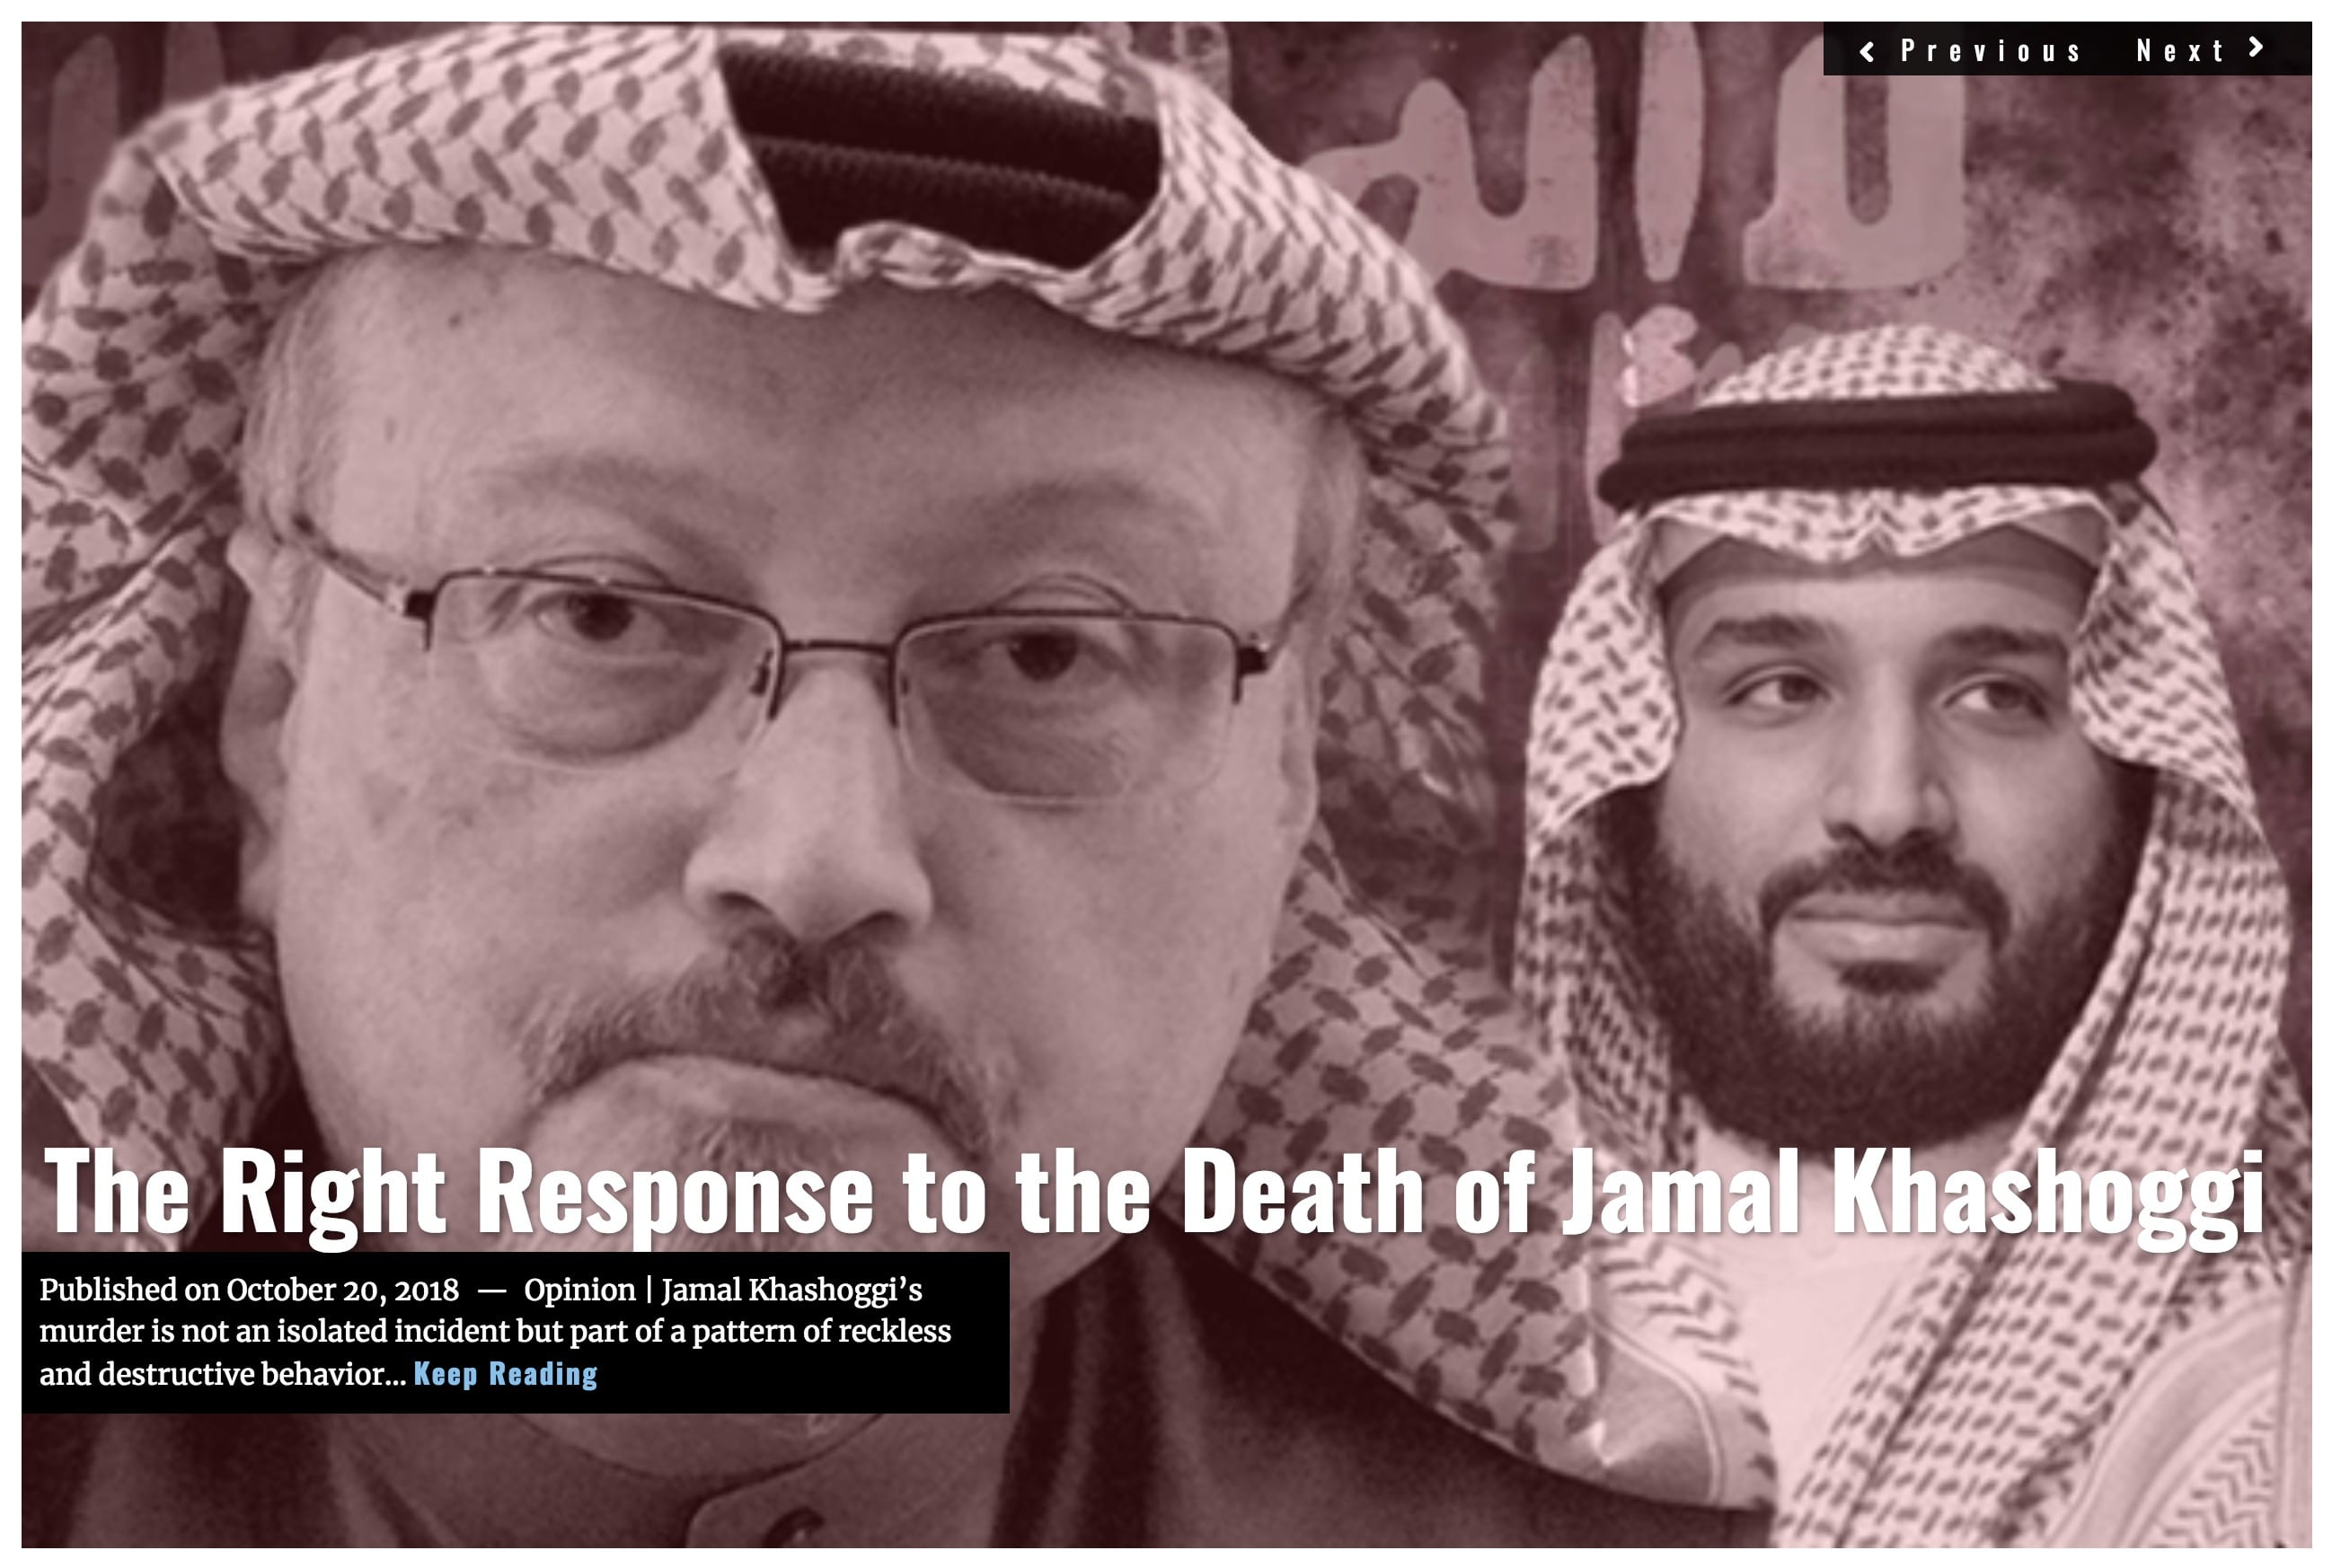 Image Lima Charlie News Headline - Death of Jamal Khashoggi OCT 2018